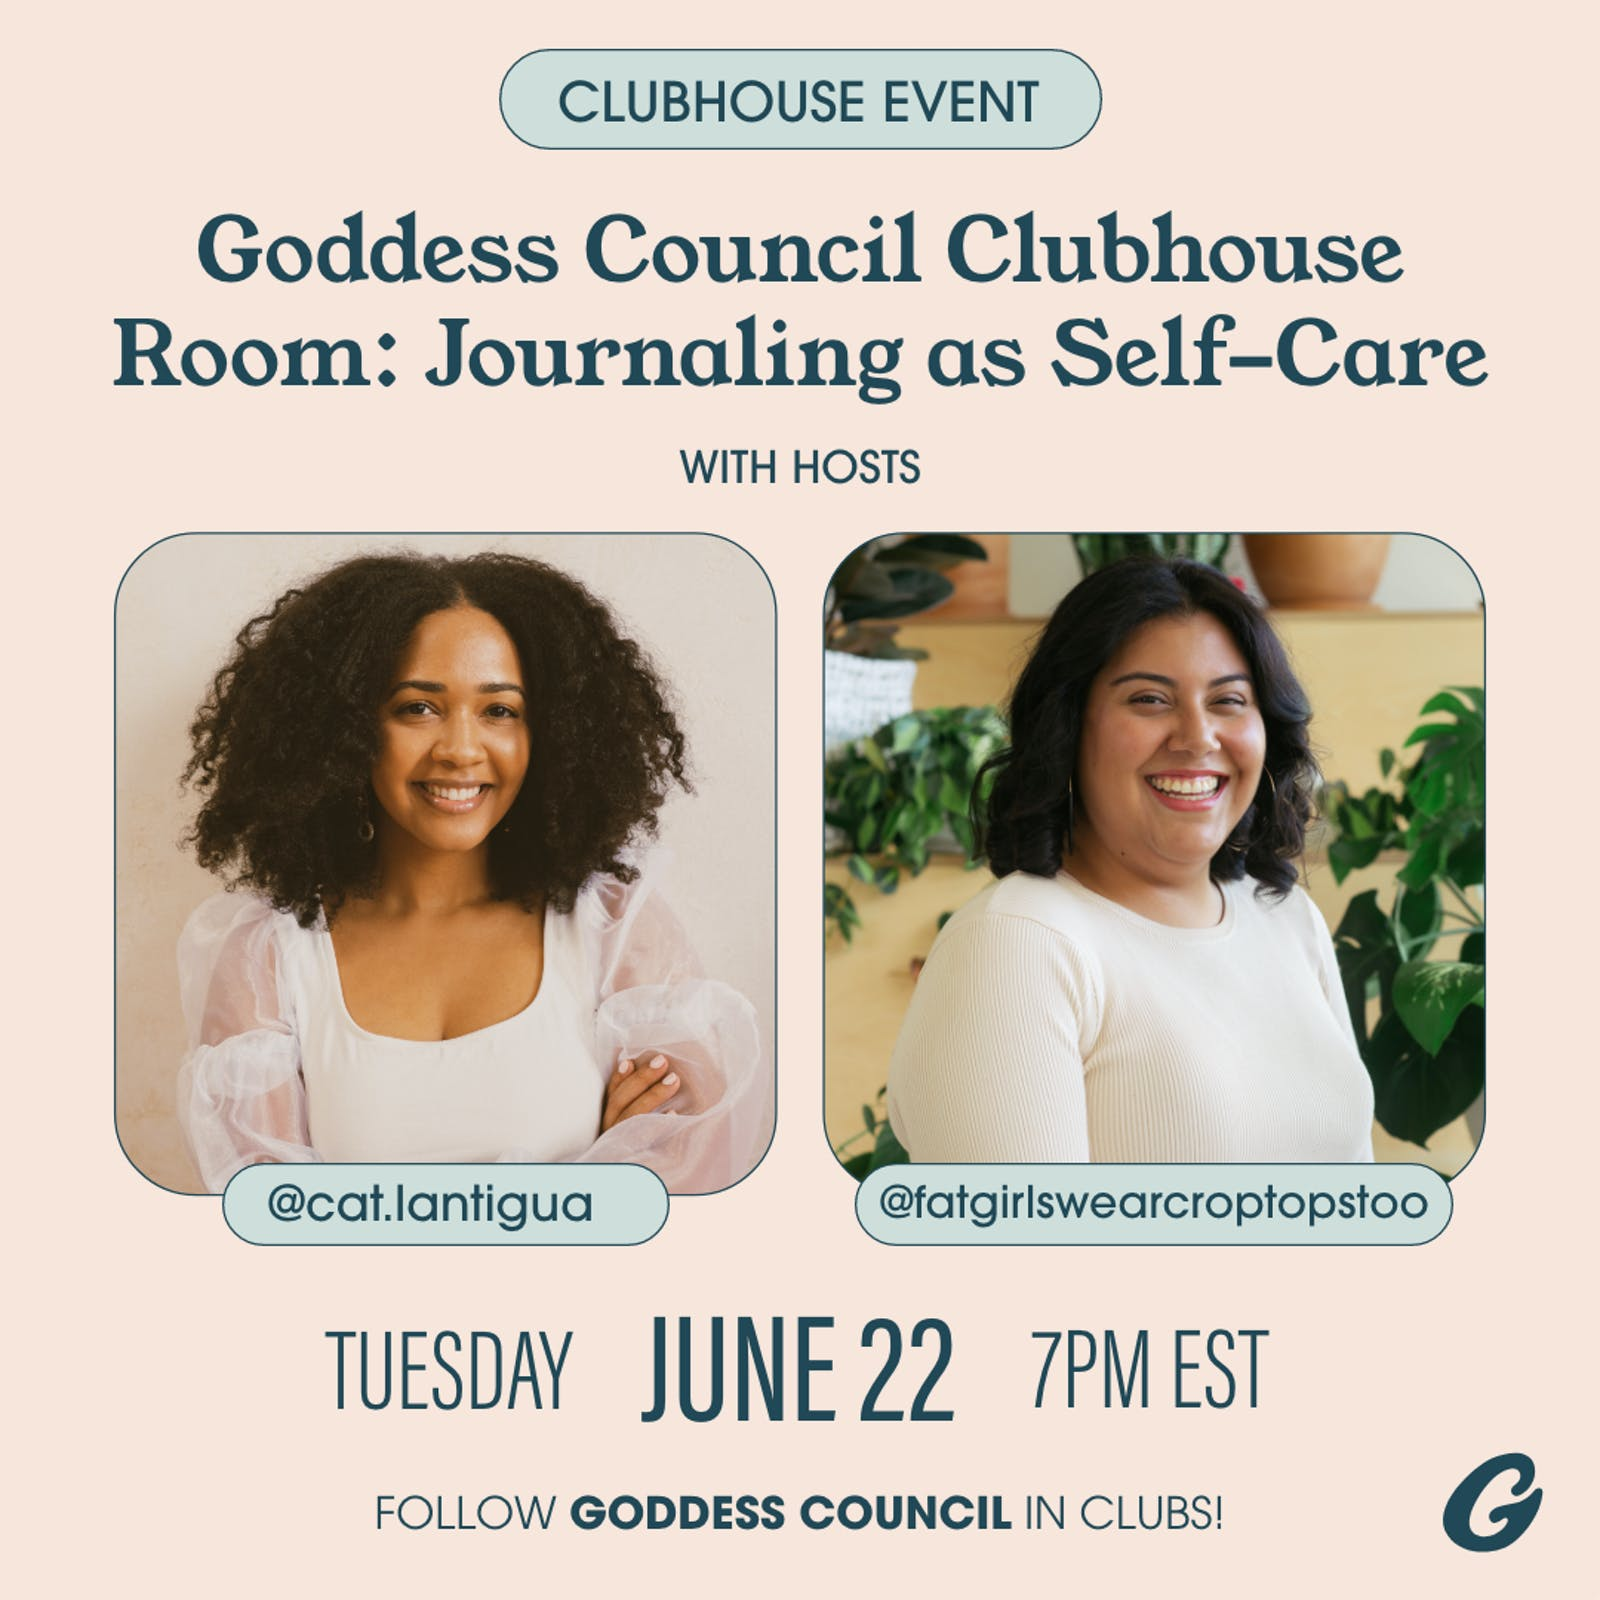 Goddess Council Clubhouse Room: Journaling as Self-Care